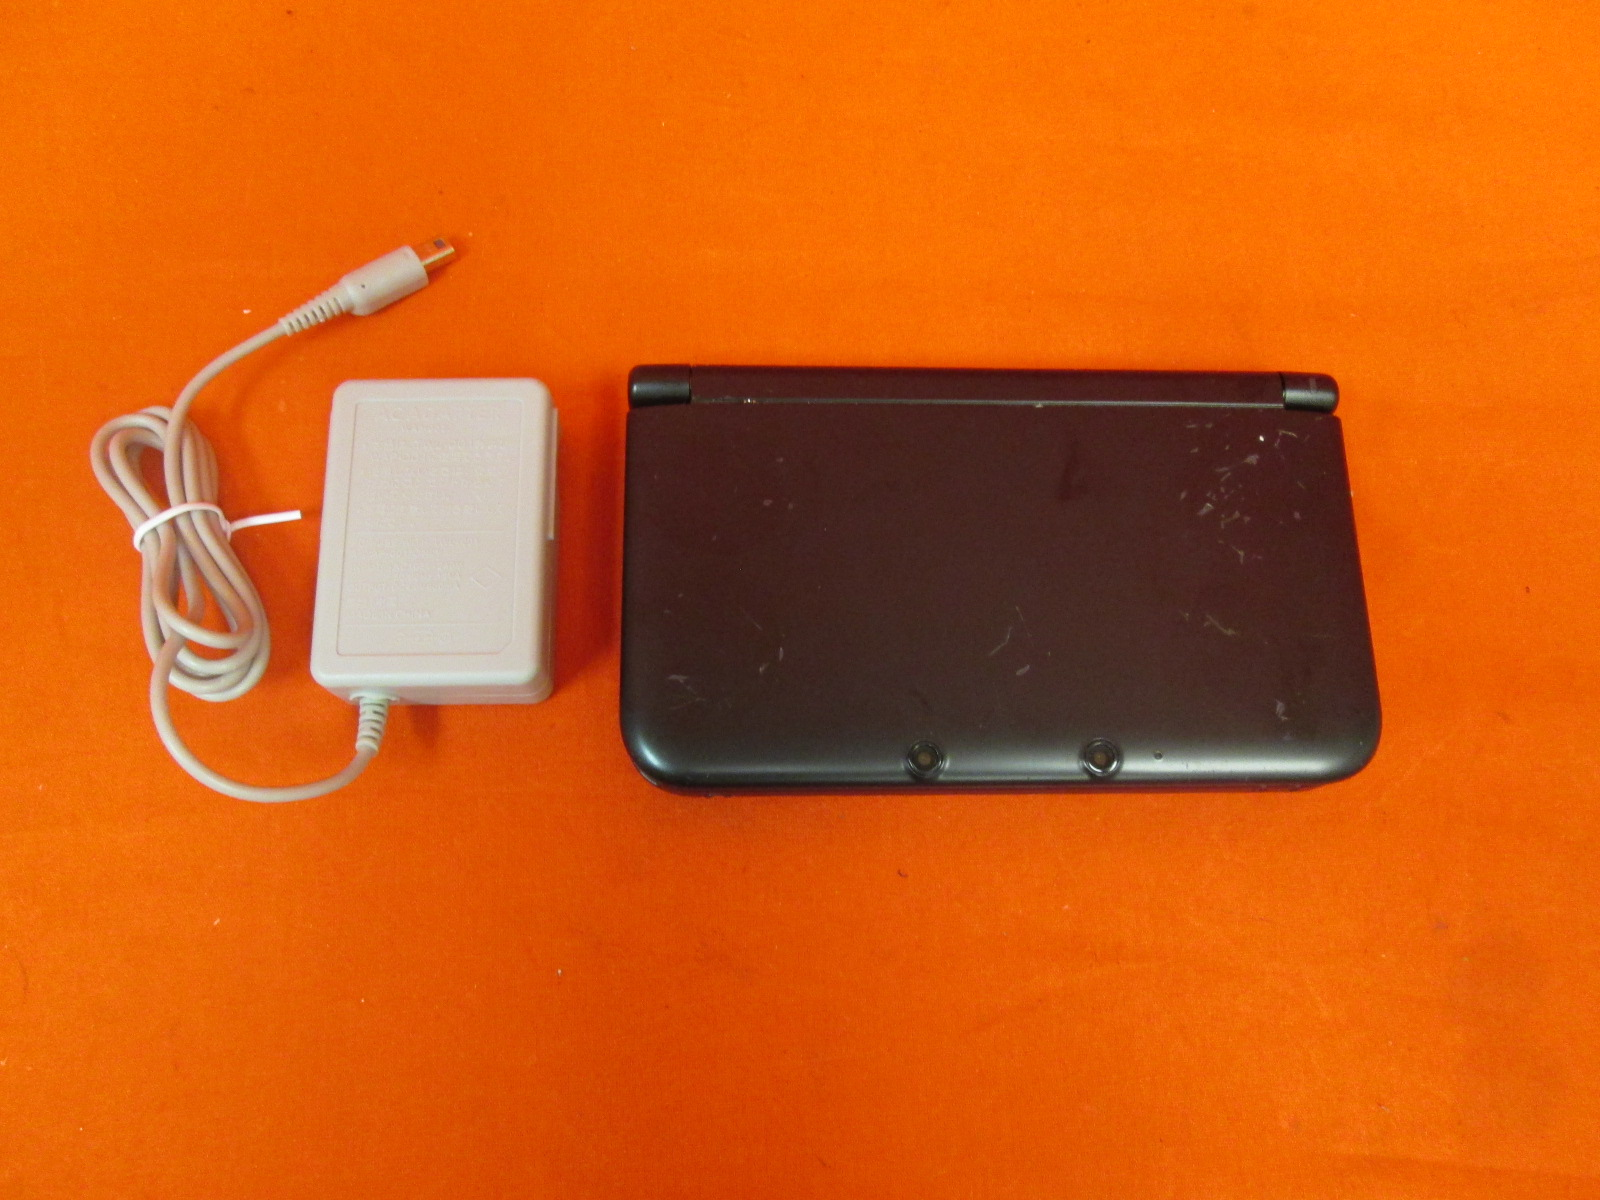 Image 1 of Nintendo 3DS XL Black Handheld Video Game Console